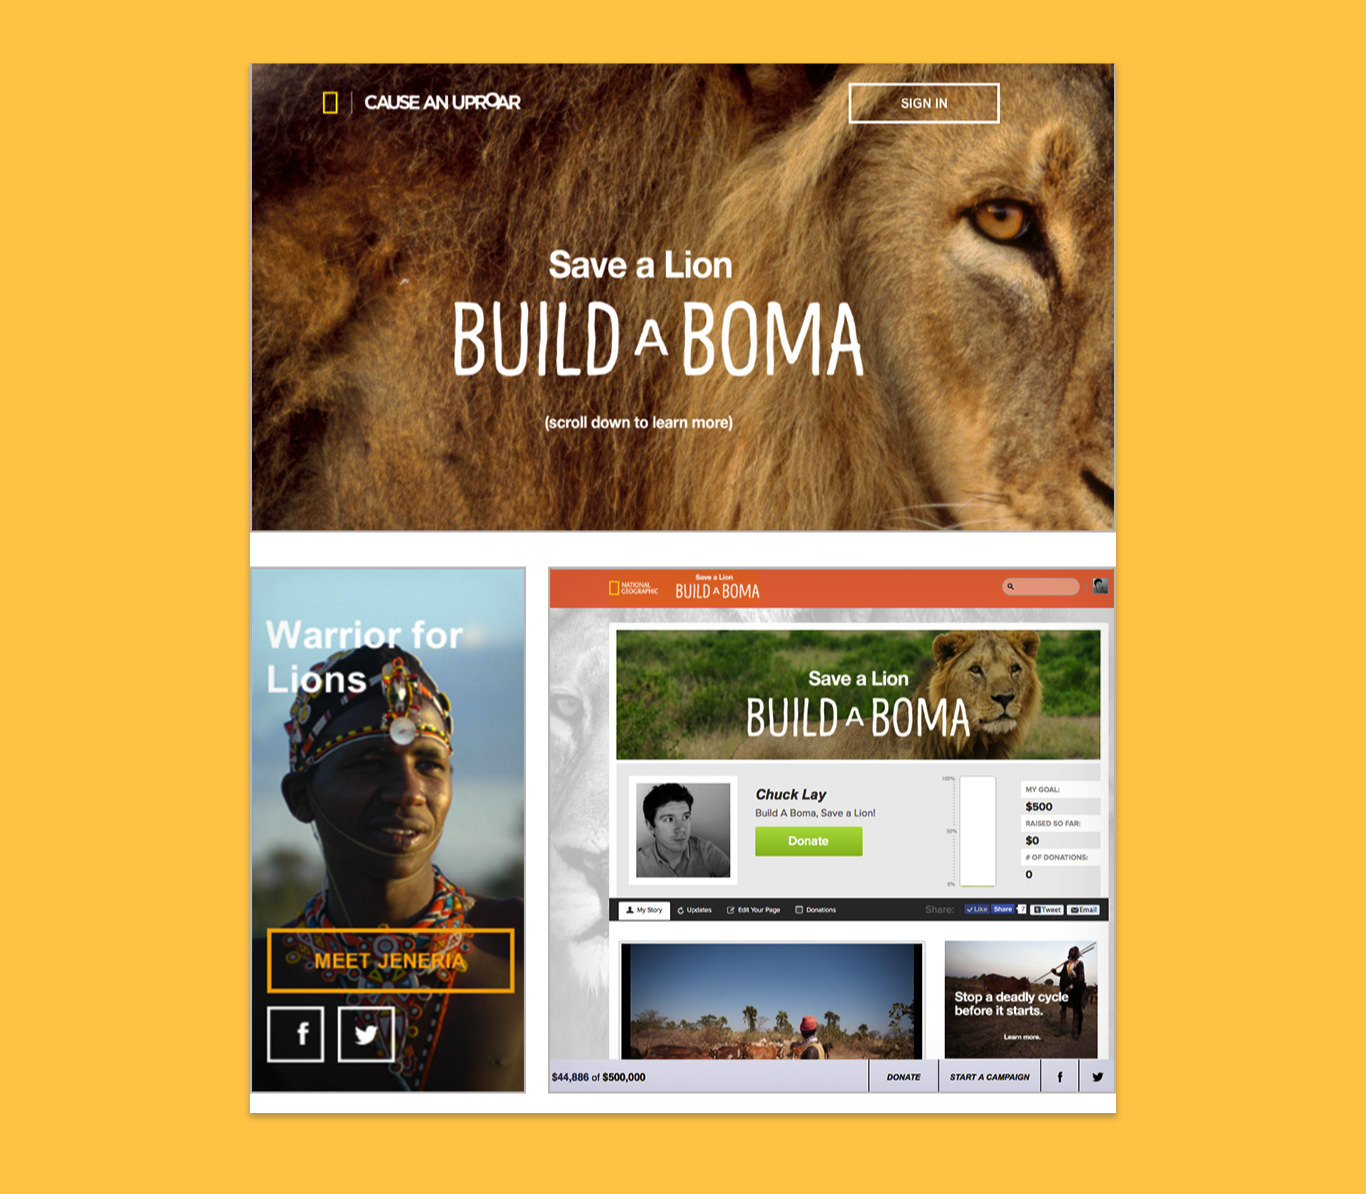 the build a boma microsite screenshot